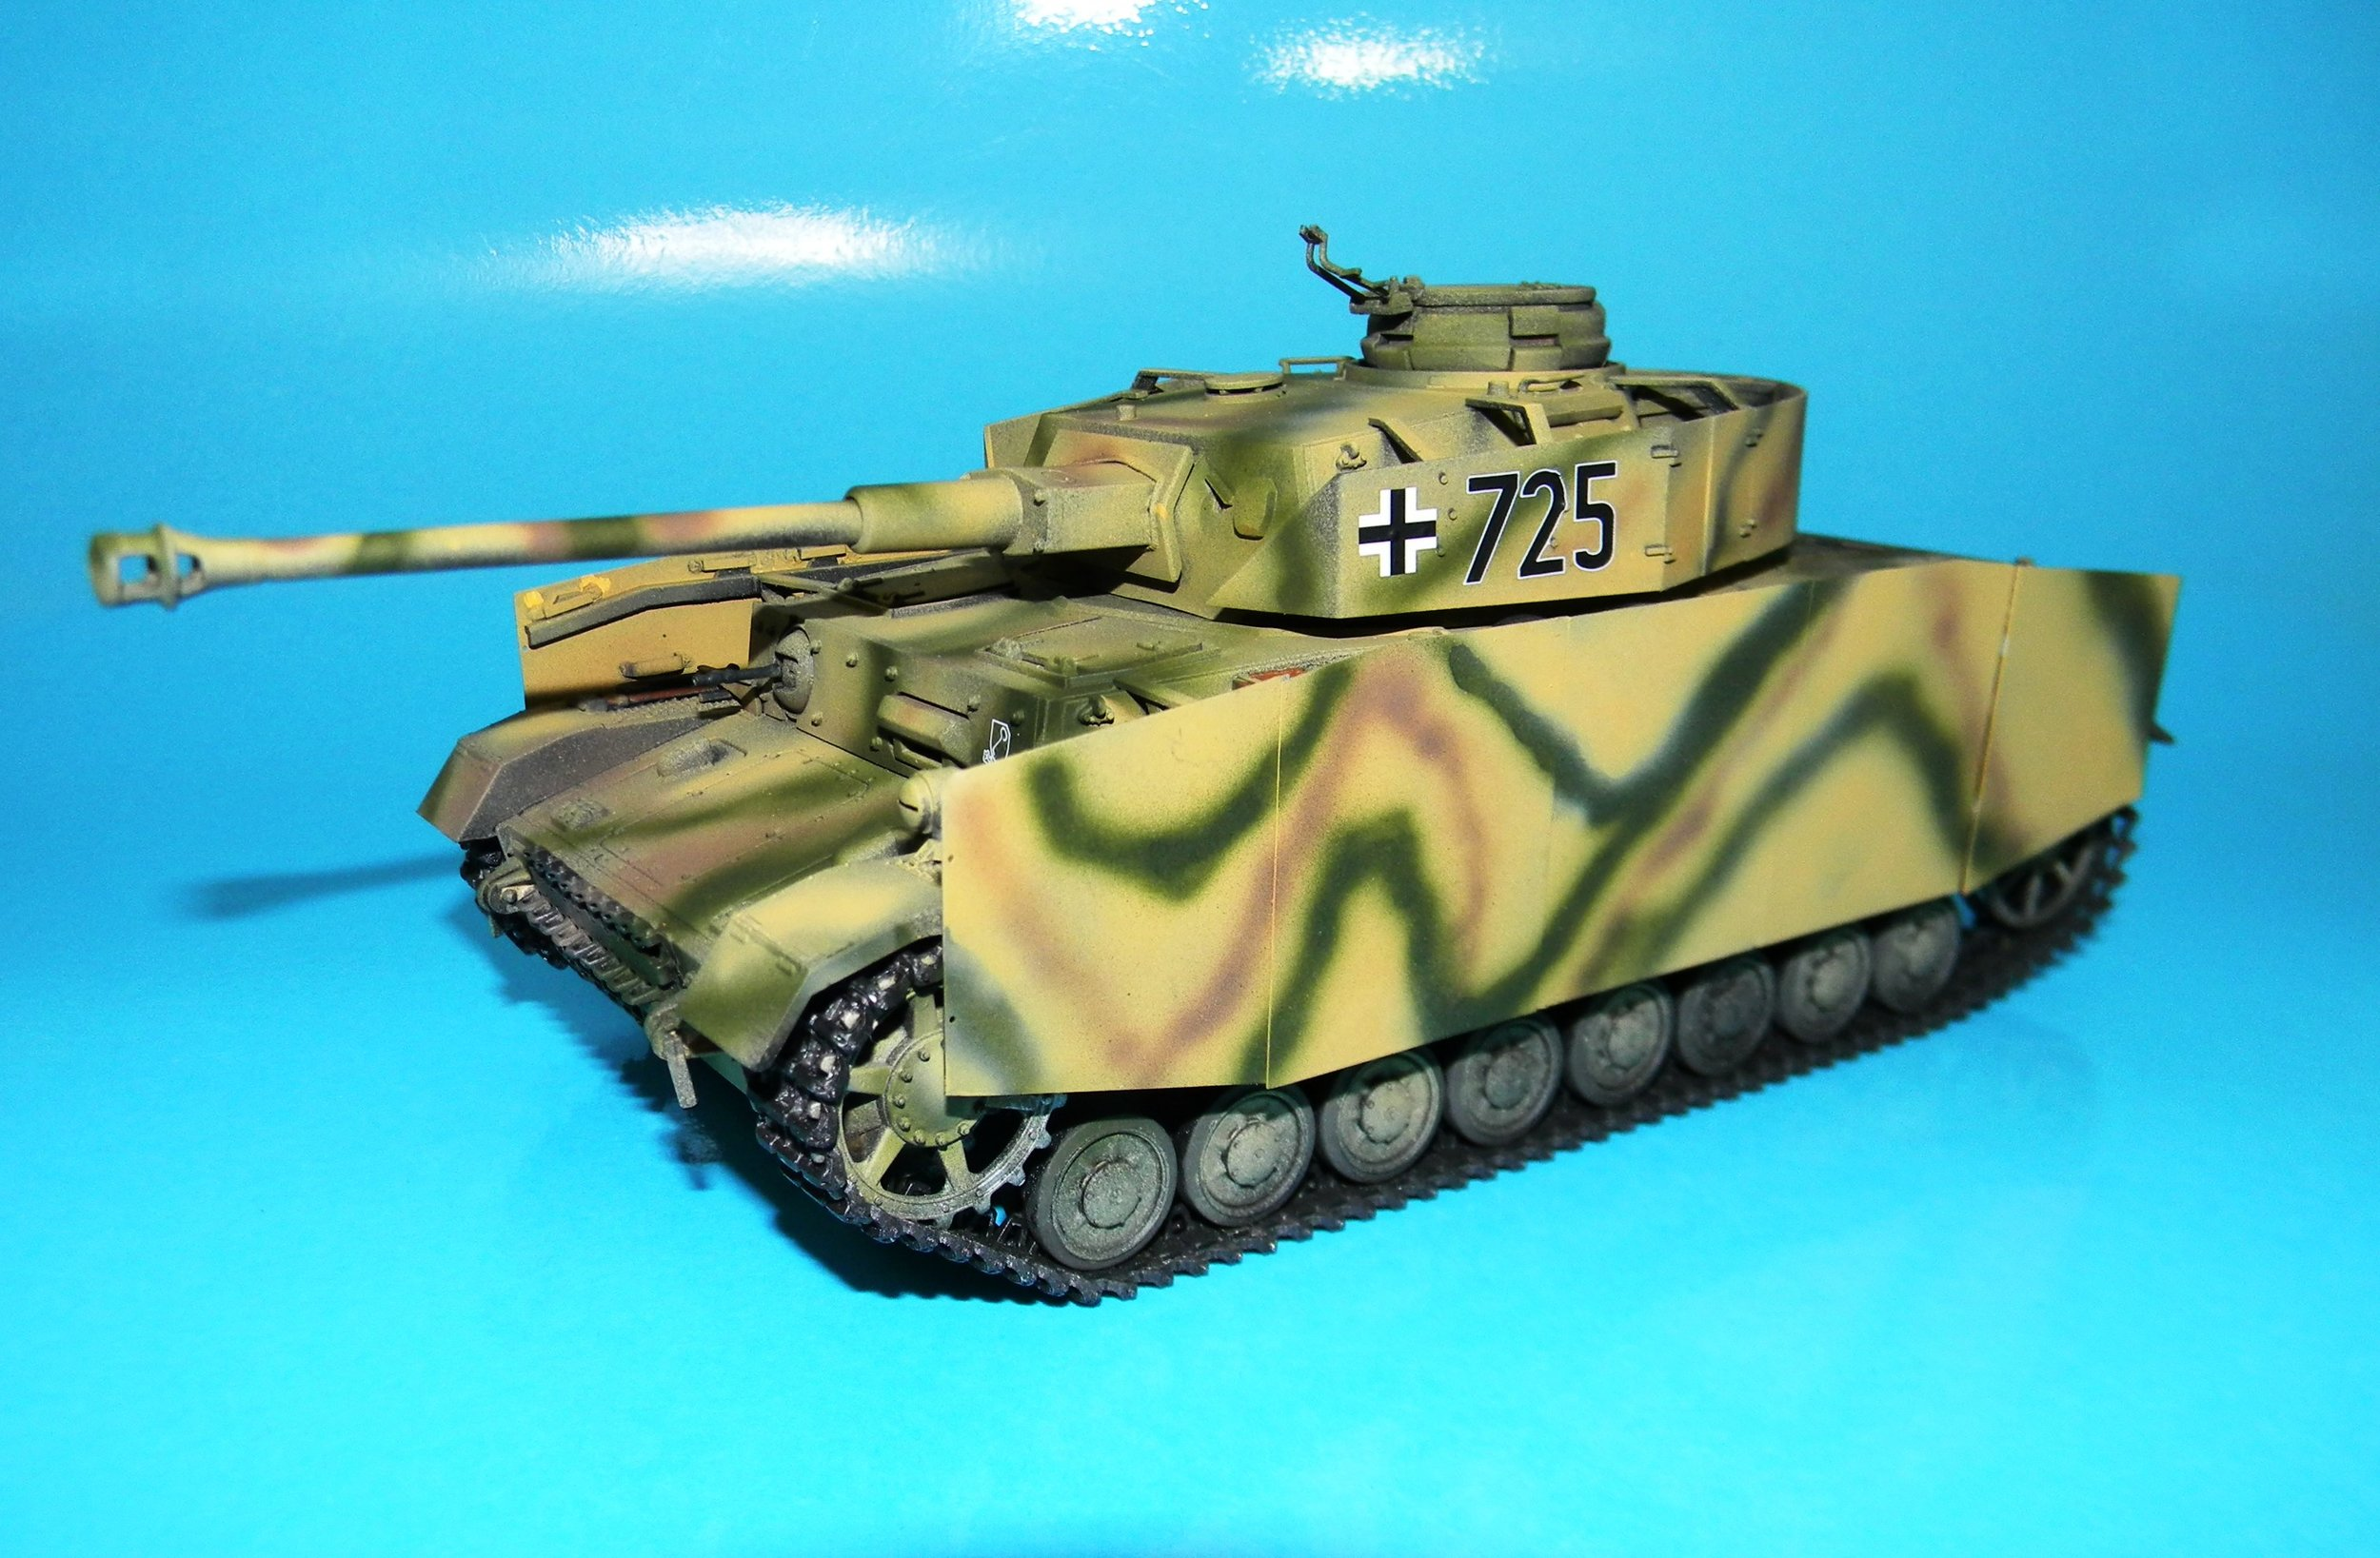 TED ANDREAS_PANZER IV Ausf. H_2ND PLACE_CTSMS CONTEST.JPG